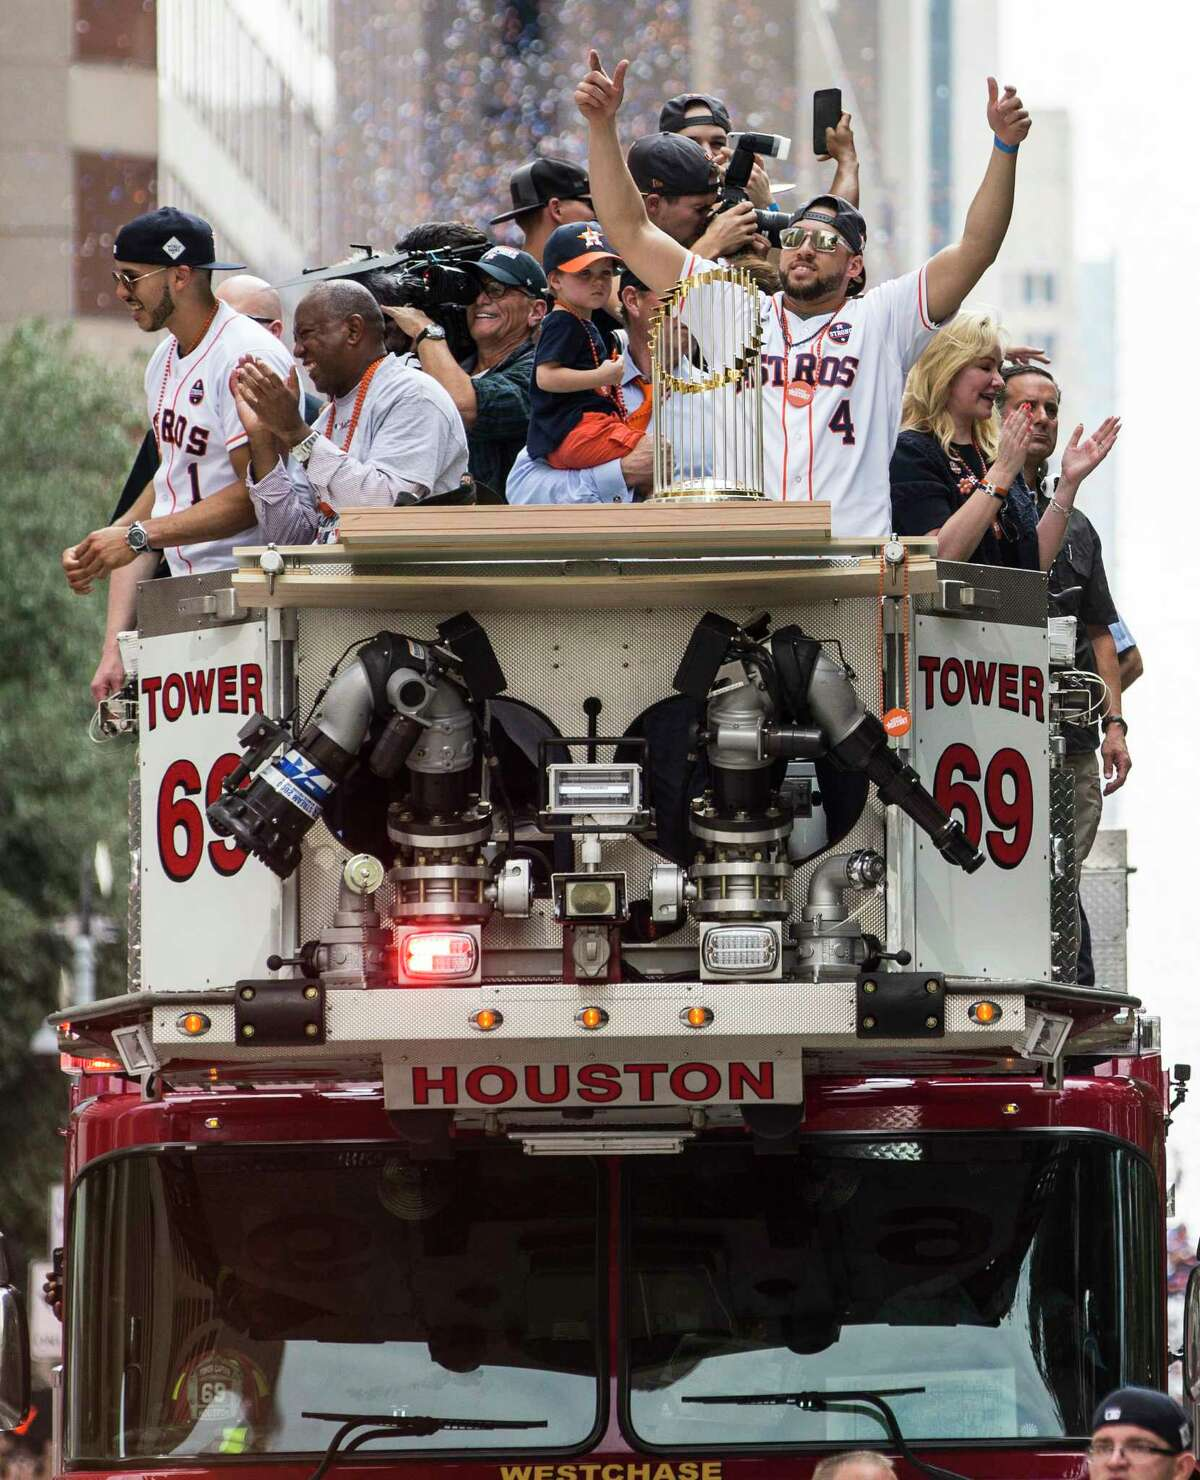 Houston Astros shortstop Carlos Correa, left, Mayor Sylvester Turner, center, and center fielder George Springer (4) wave to the crowd while riding on a ladder truck during the Astros World Series championship celebration parade on Friday, Nov. 3, 2017, in Houston. ( Brett Coomer / Houston Chronicle )